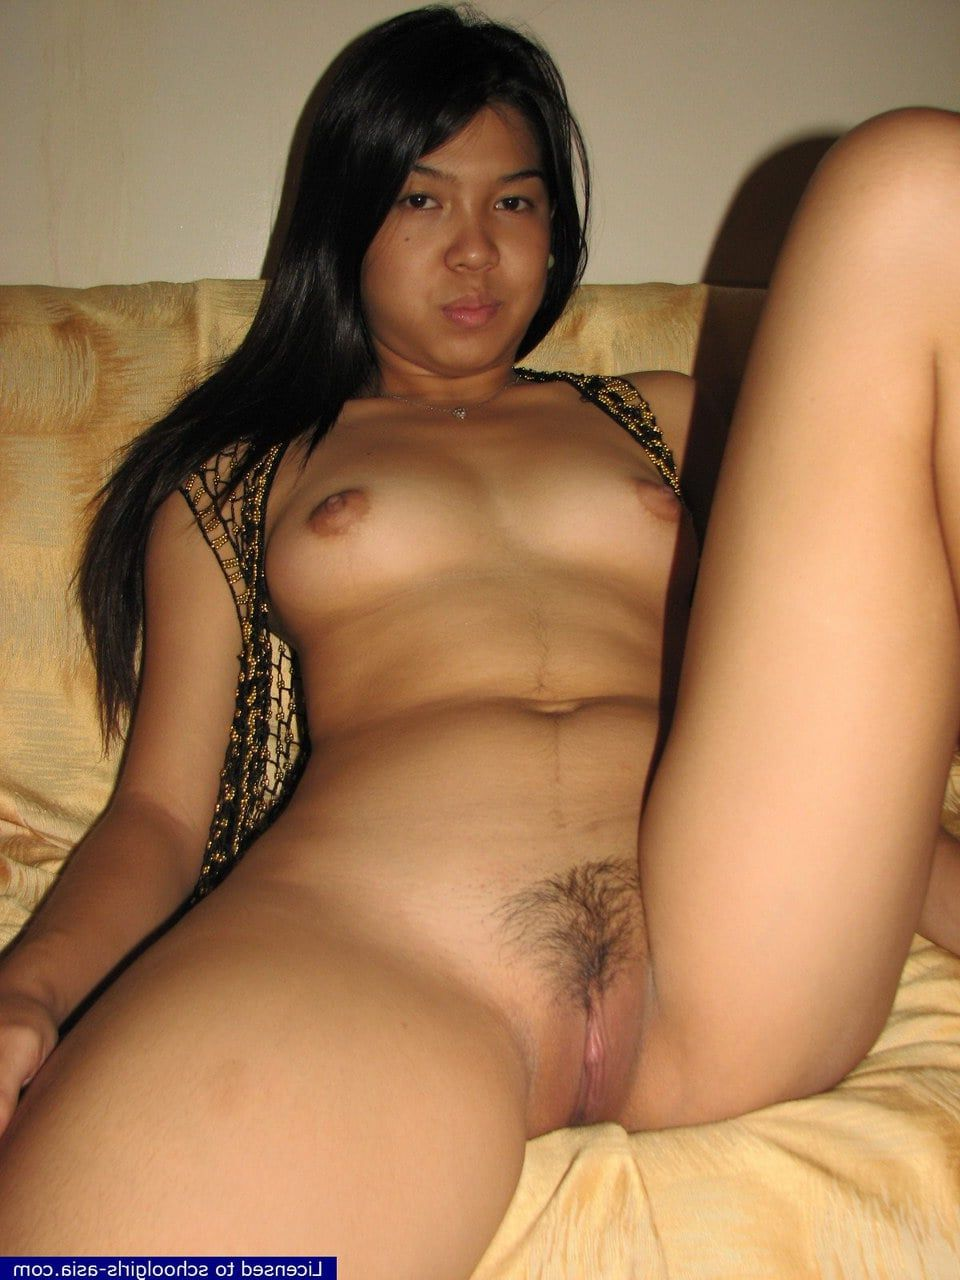 girl naked Cambodian